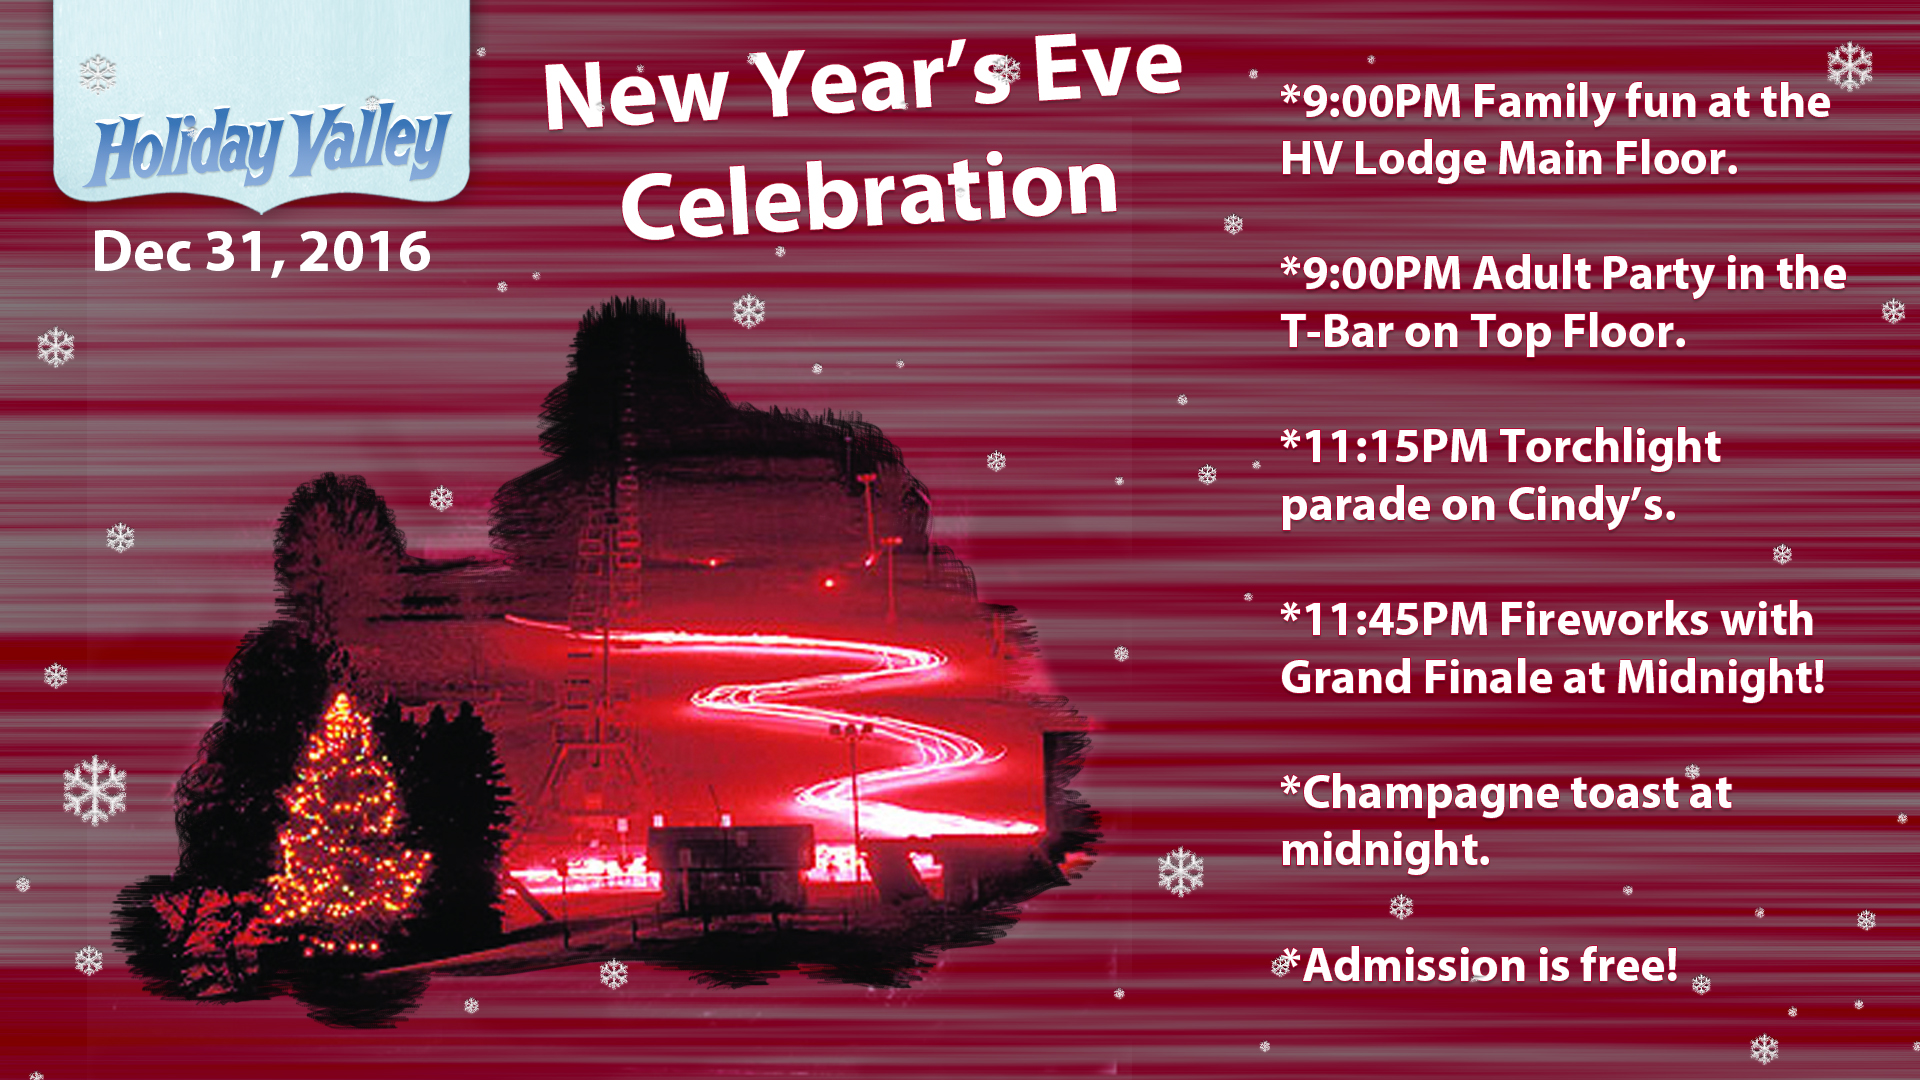 2016 Holiday Valley New Year's Eve Celebration